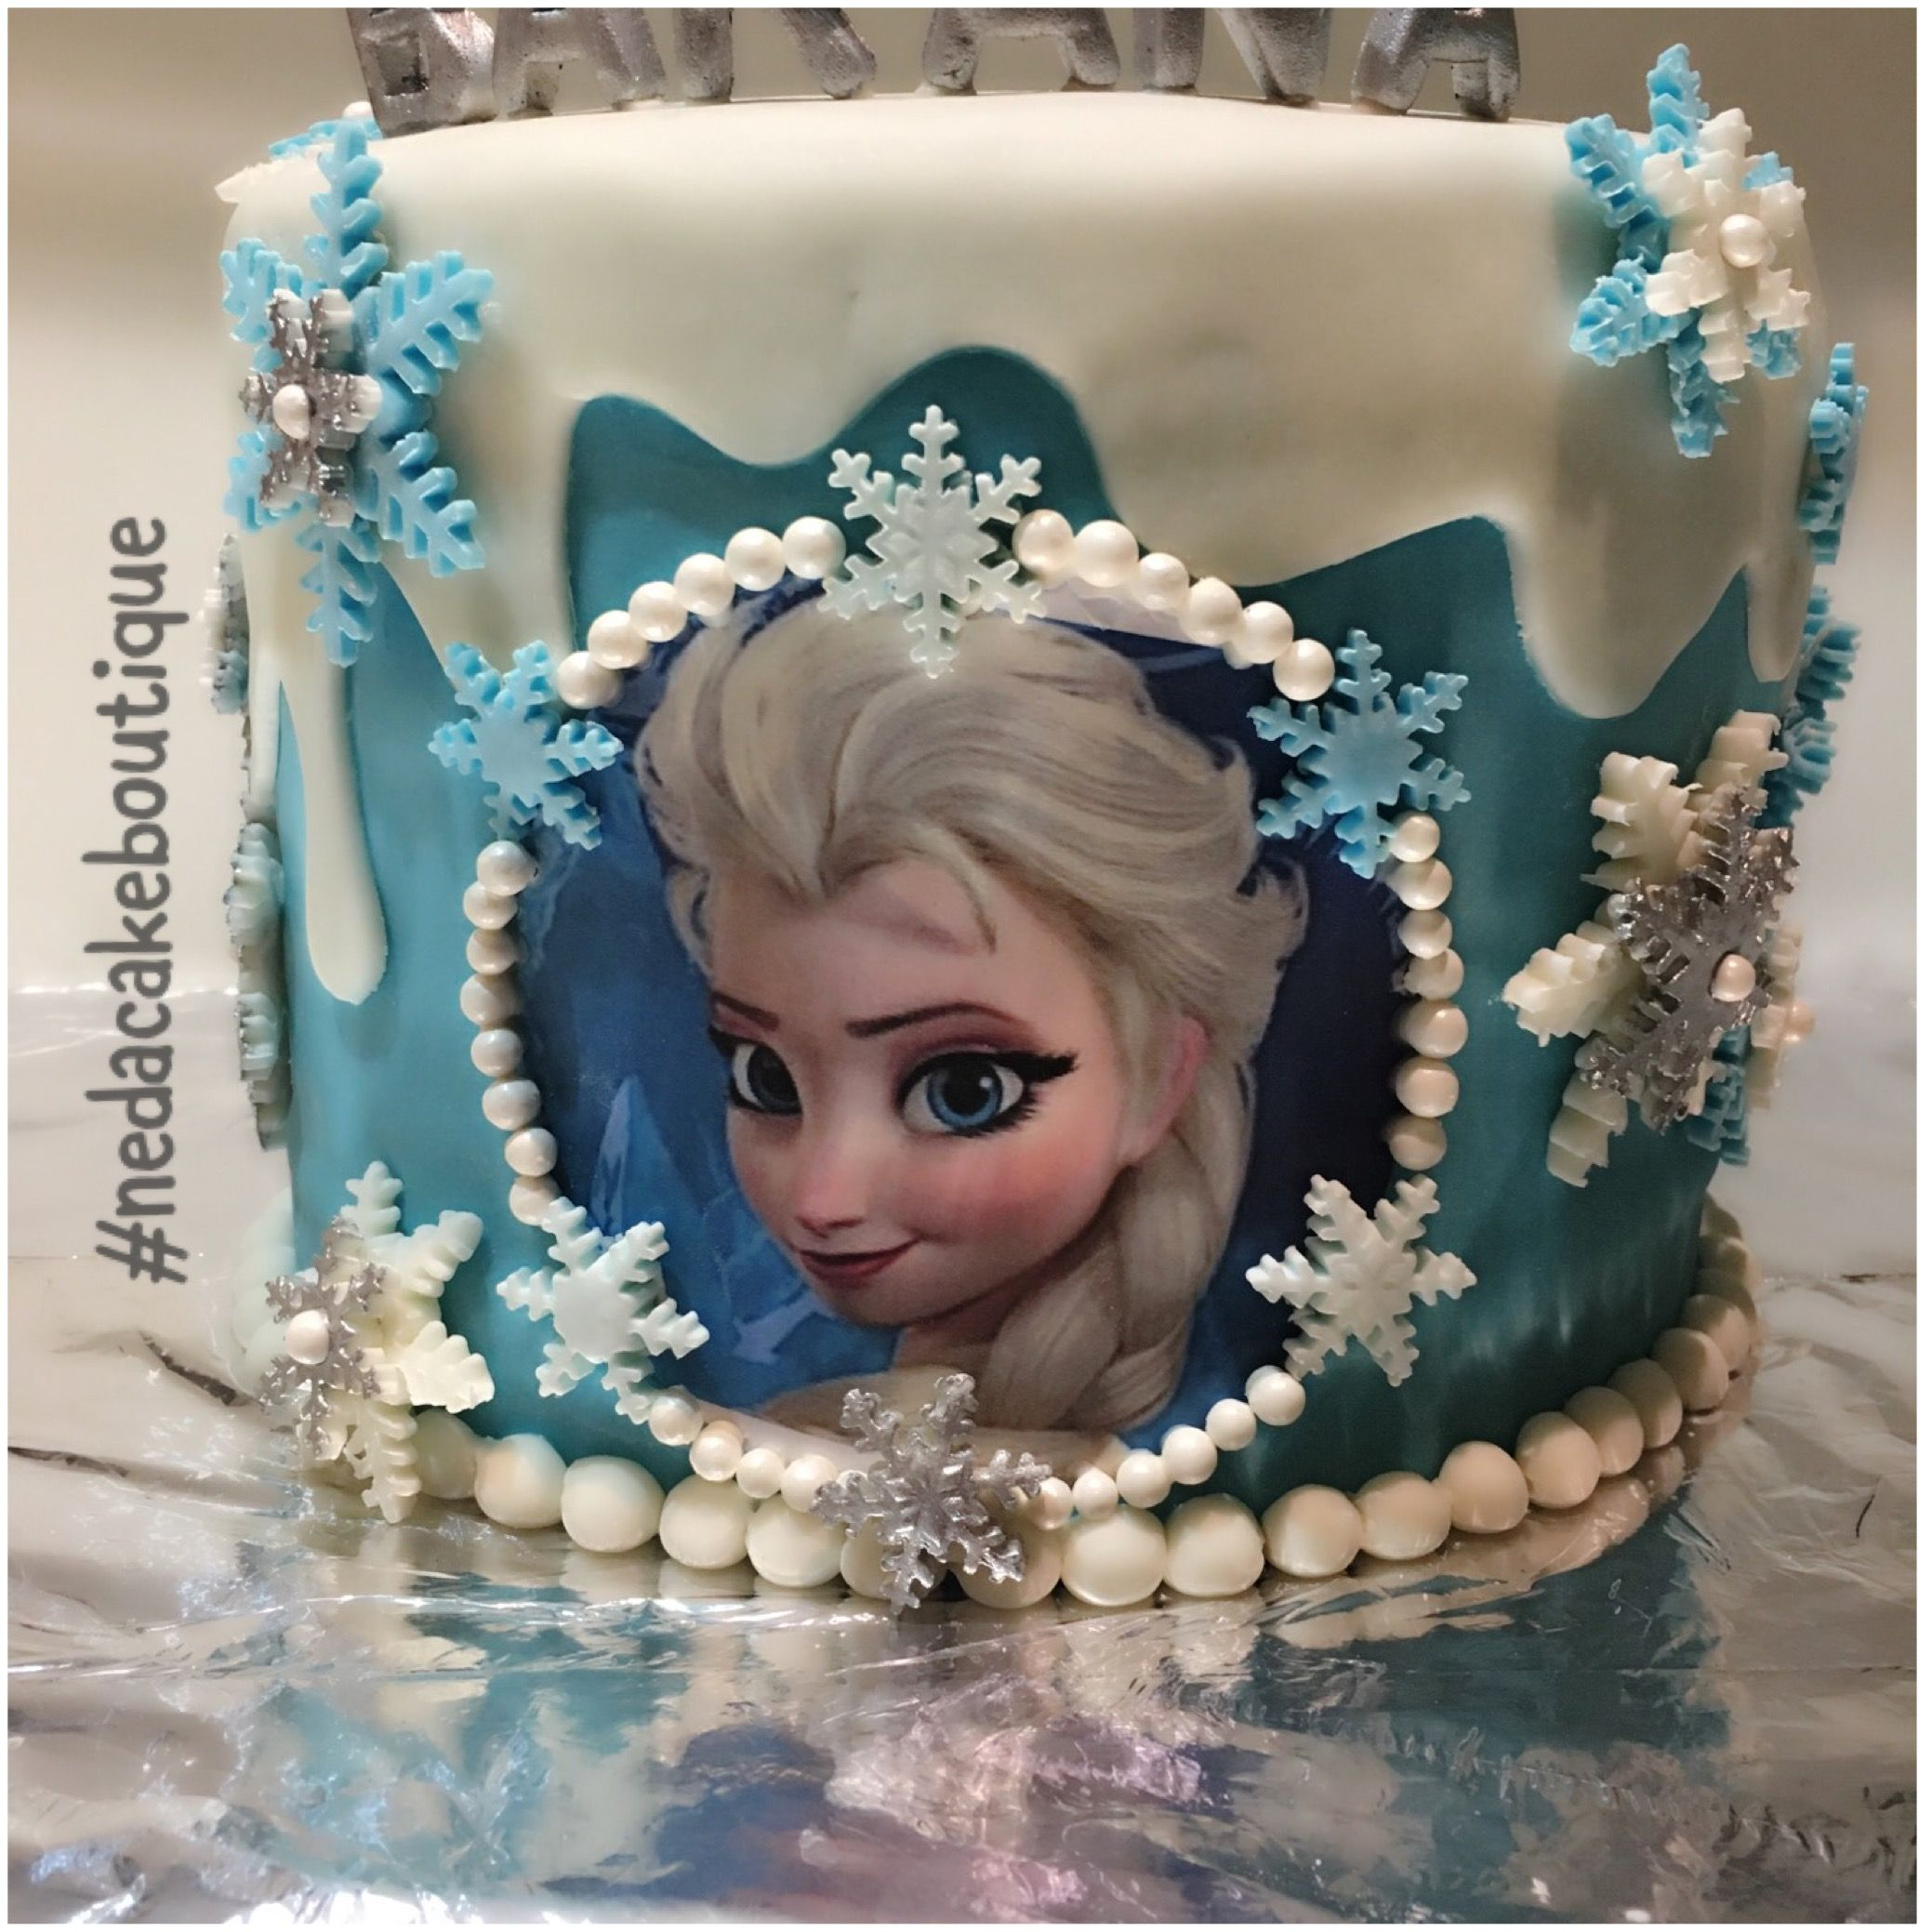 Frozen #party #fondant#baby#cake#rainbow#color#birthday#first